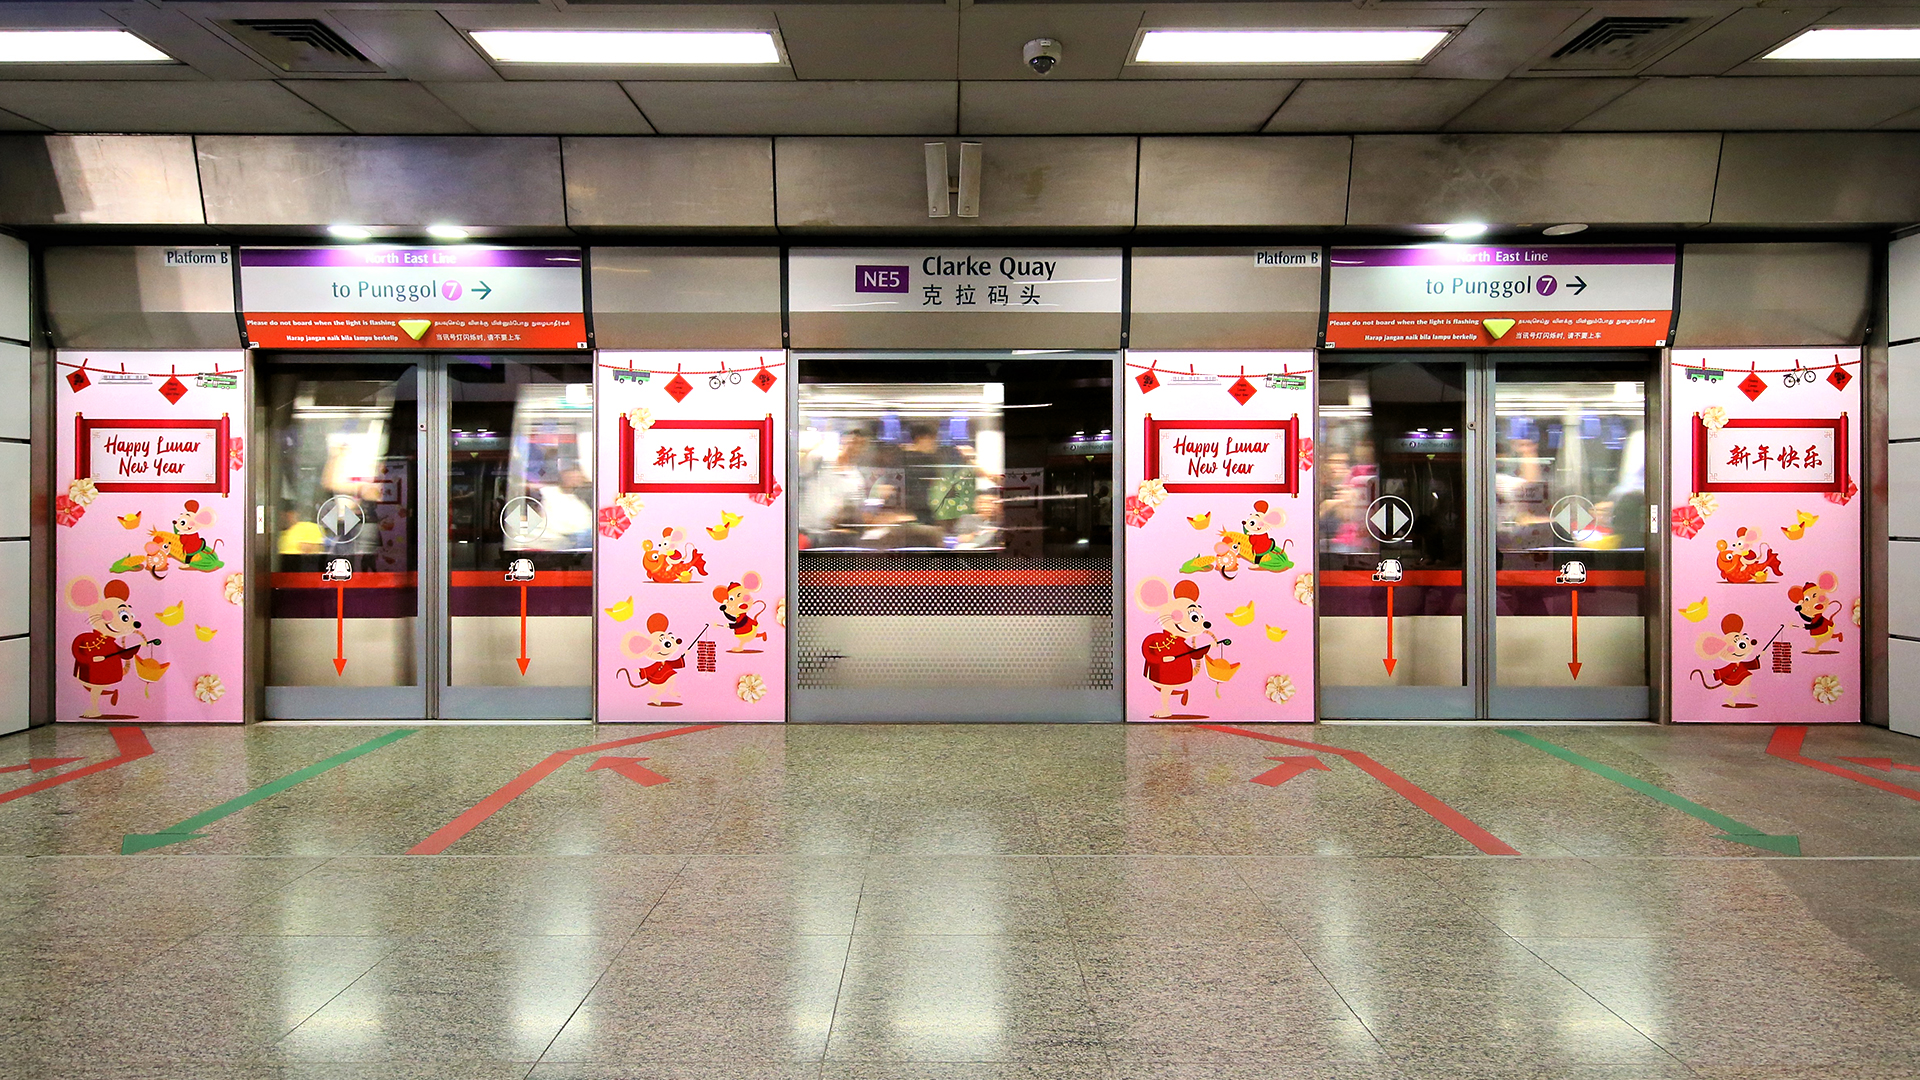 Clarke Quay MRT station decorated for CNY